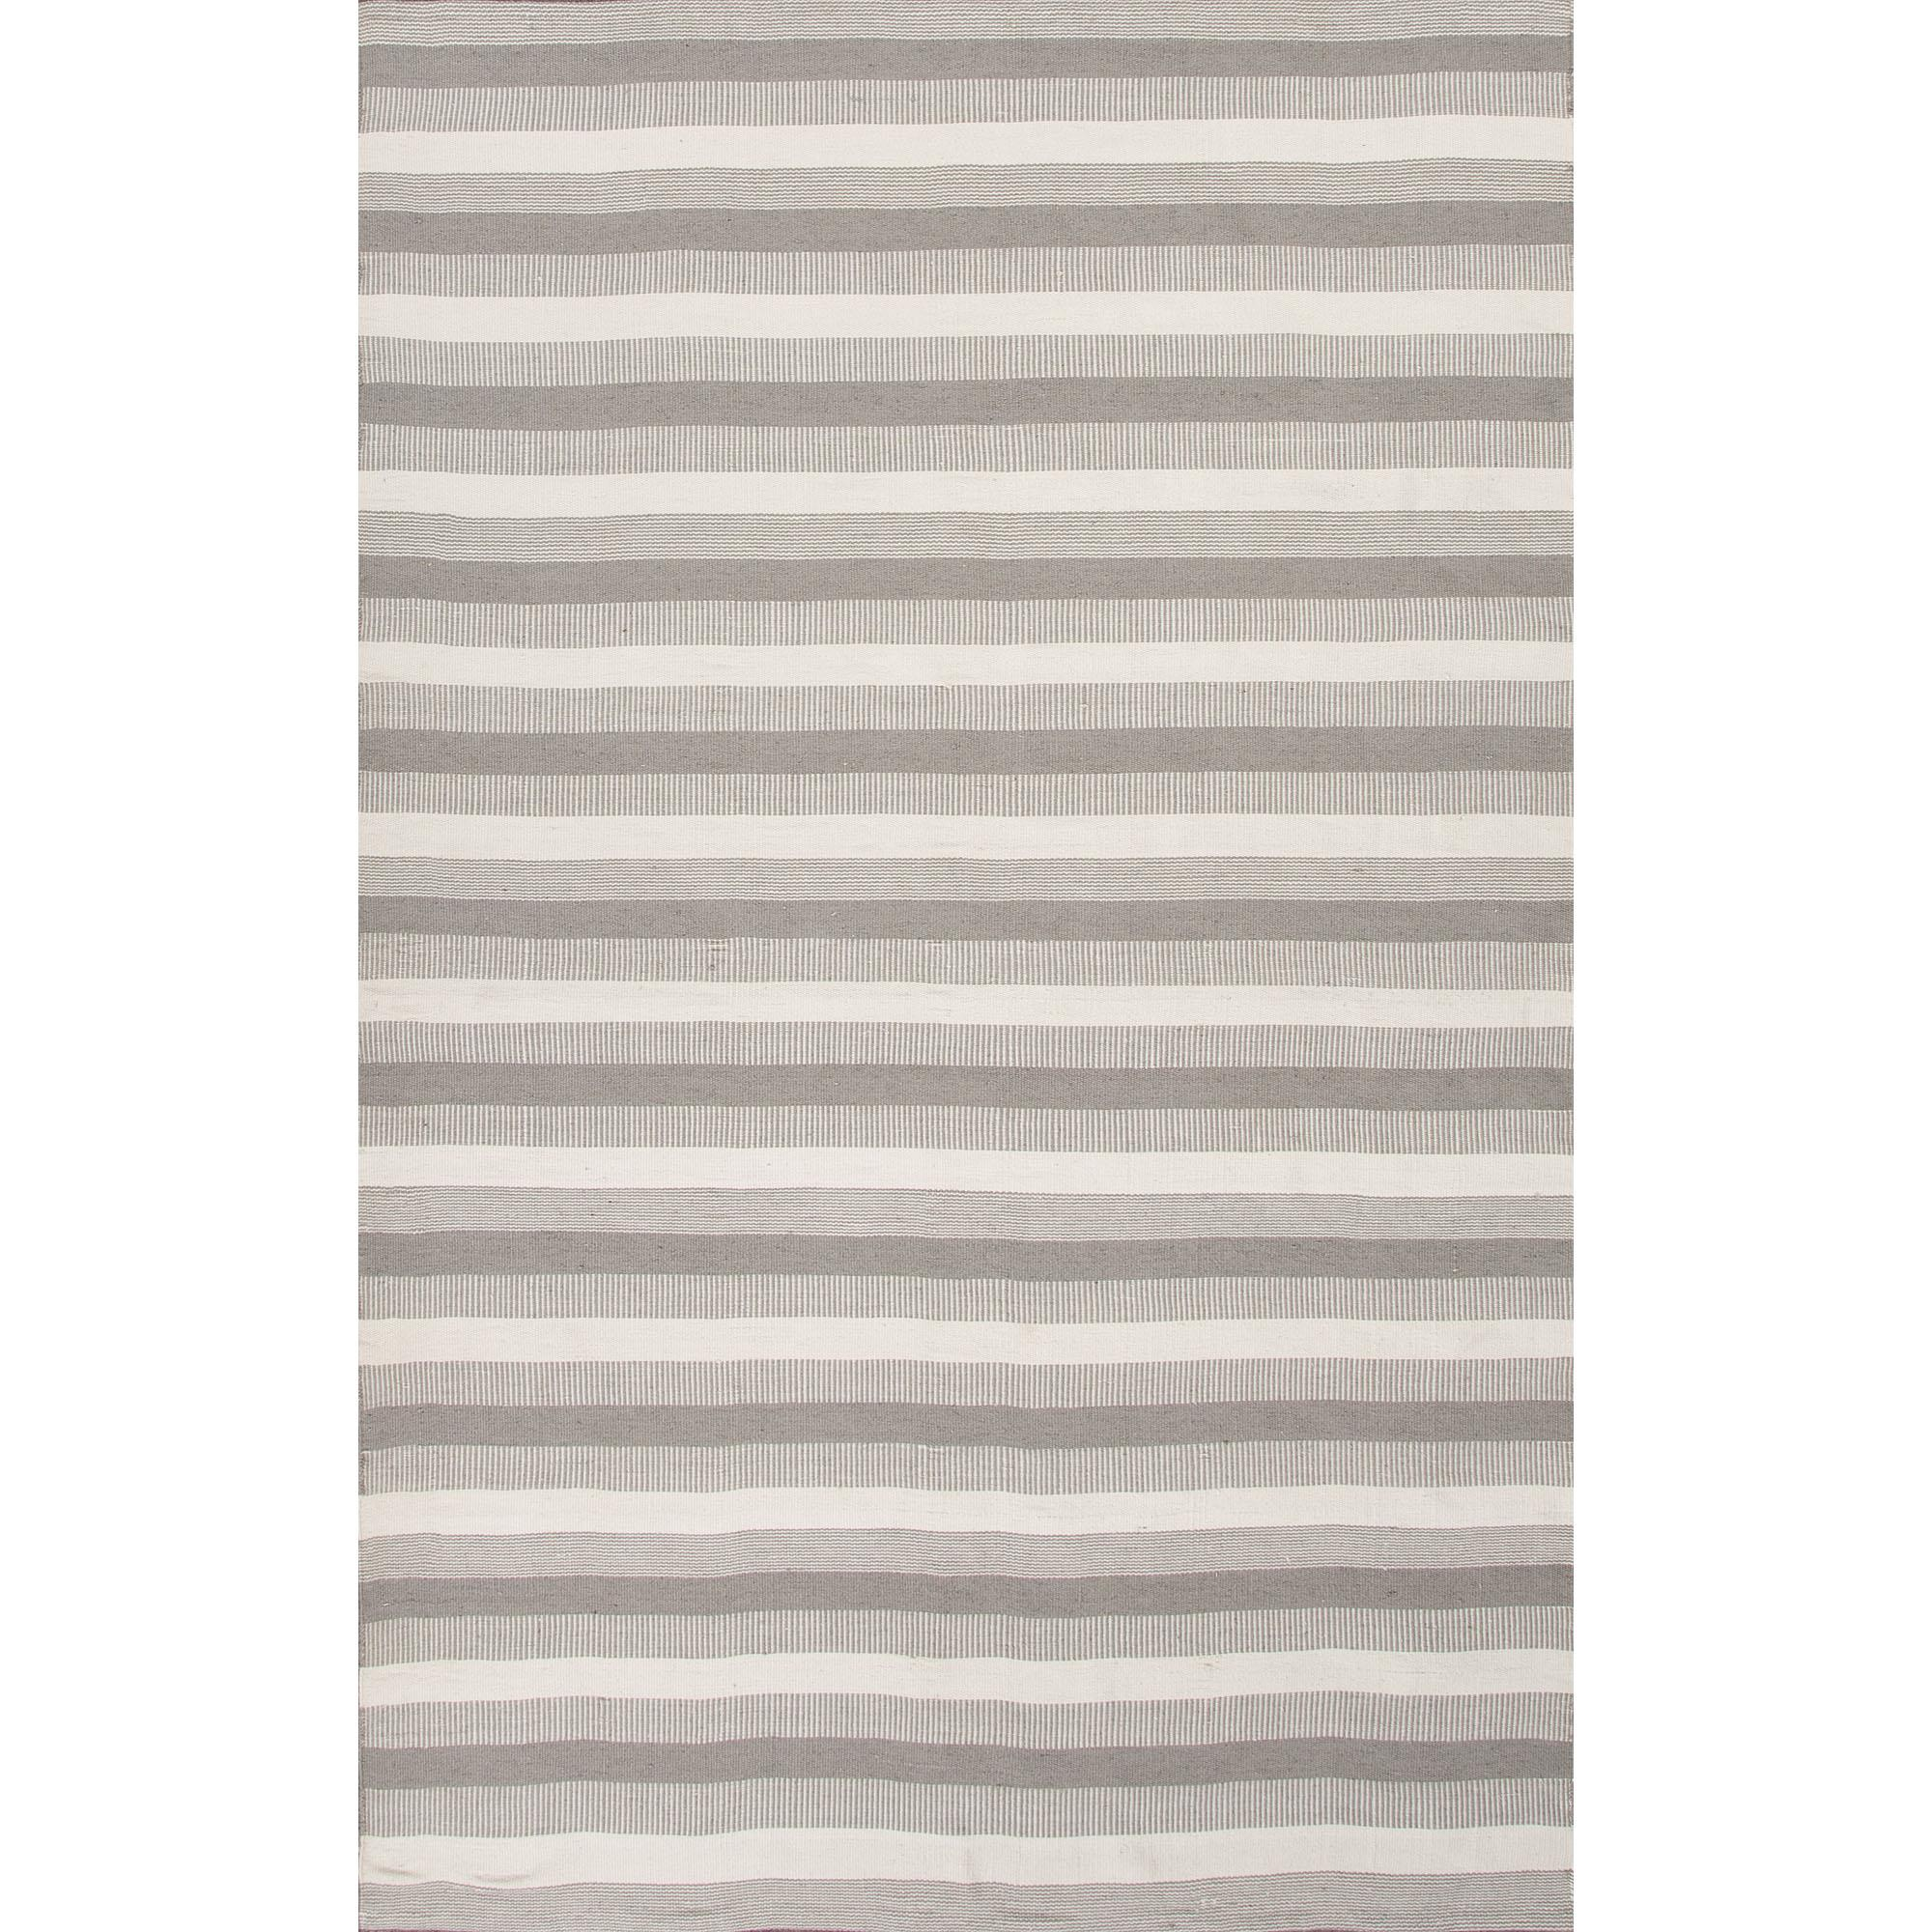 JAIPUR Rugs Birch 5 x 8 Rug - Item Number: RUG112464